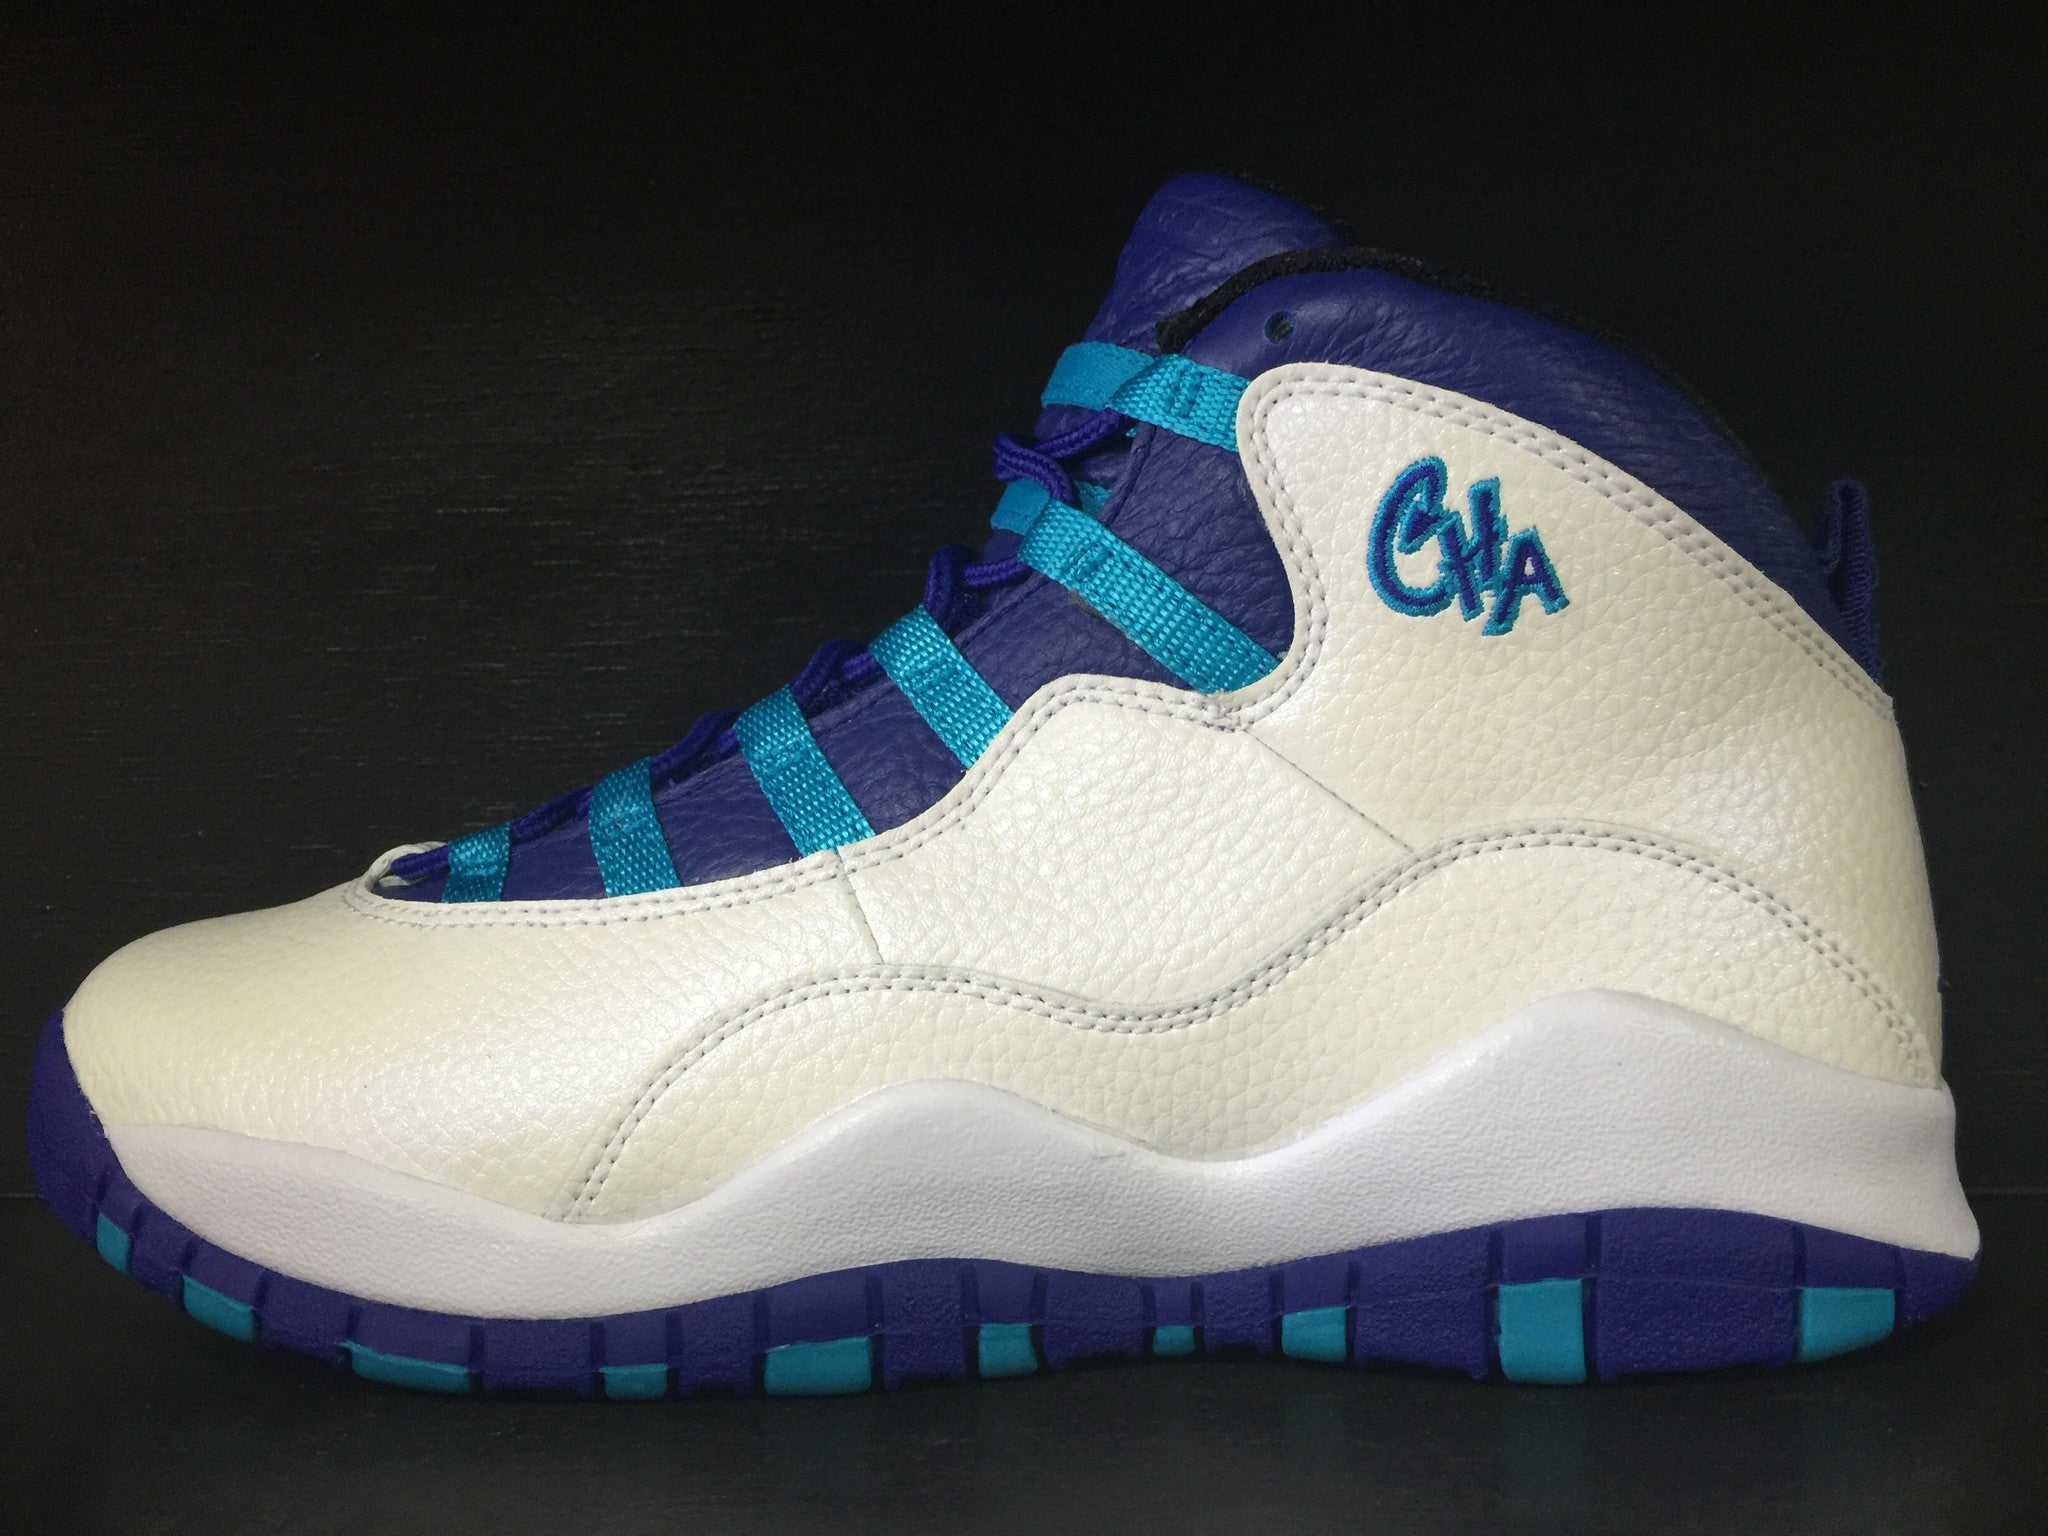 Air Jordan 10 Retro 'Charlotte' GS